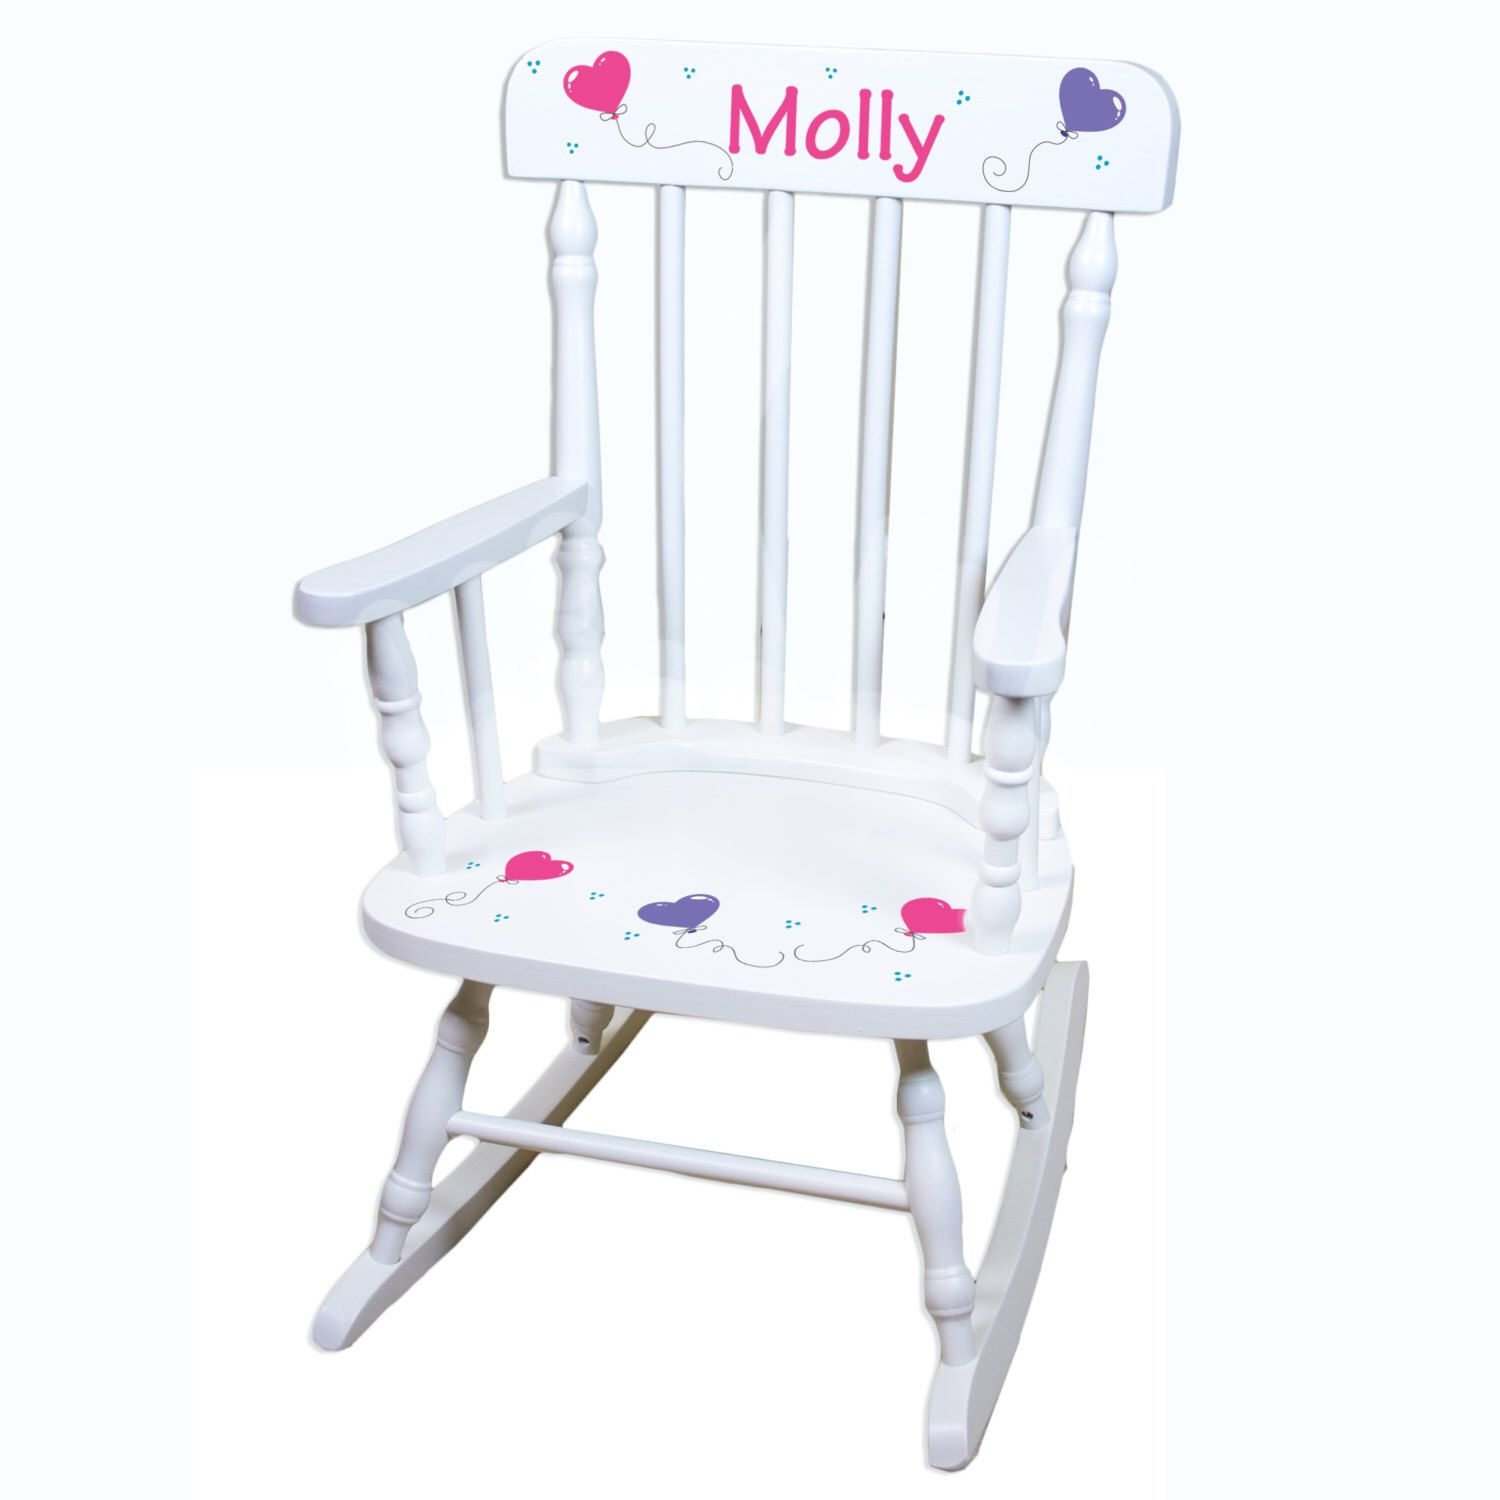 Kids Rocking Chairs Hand Painted Personalized Girls White Spindle Rocking Chair Wood